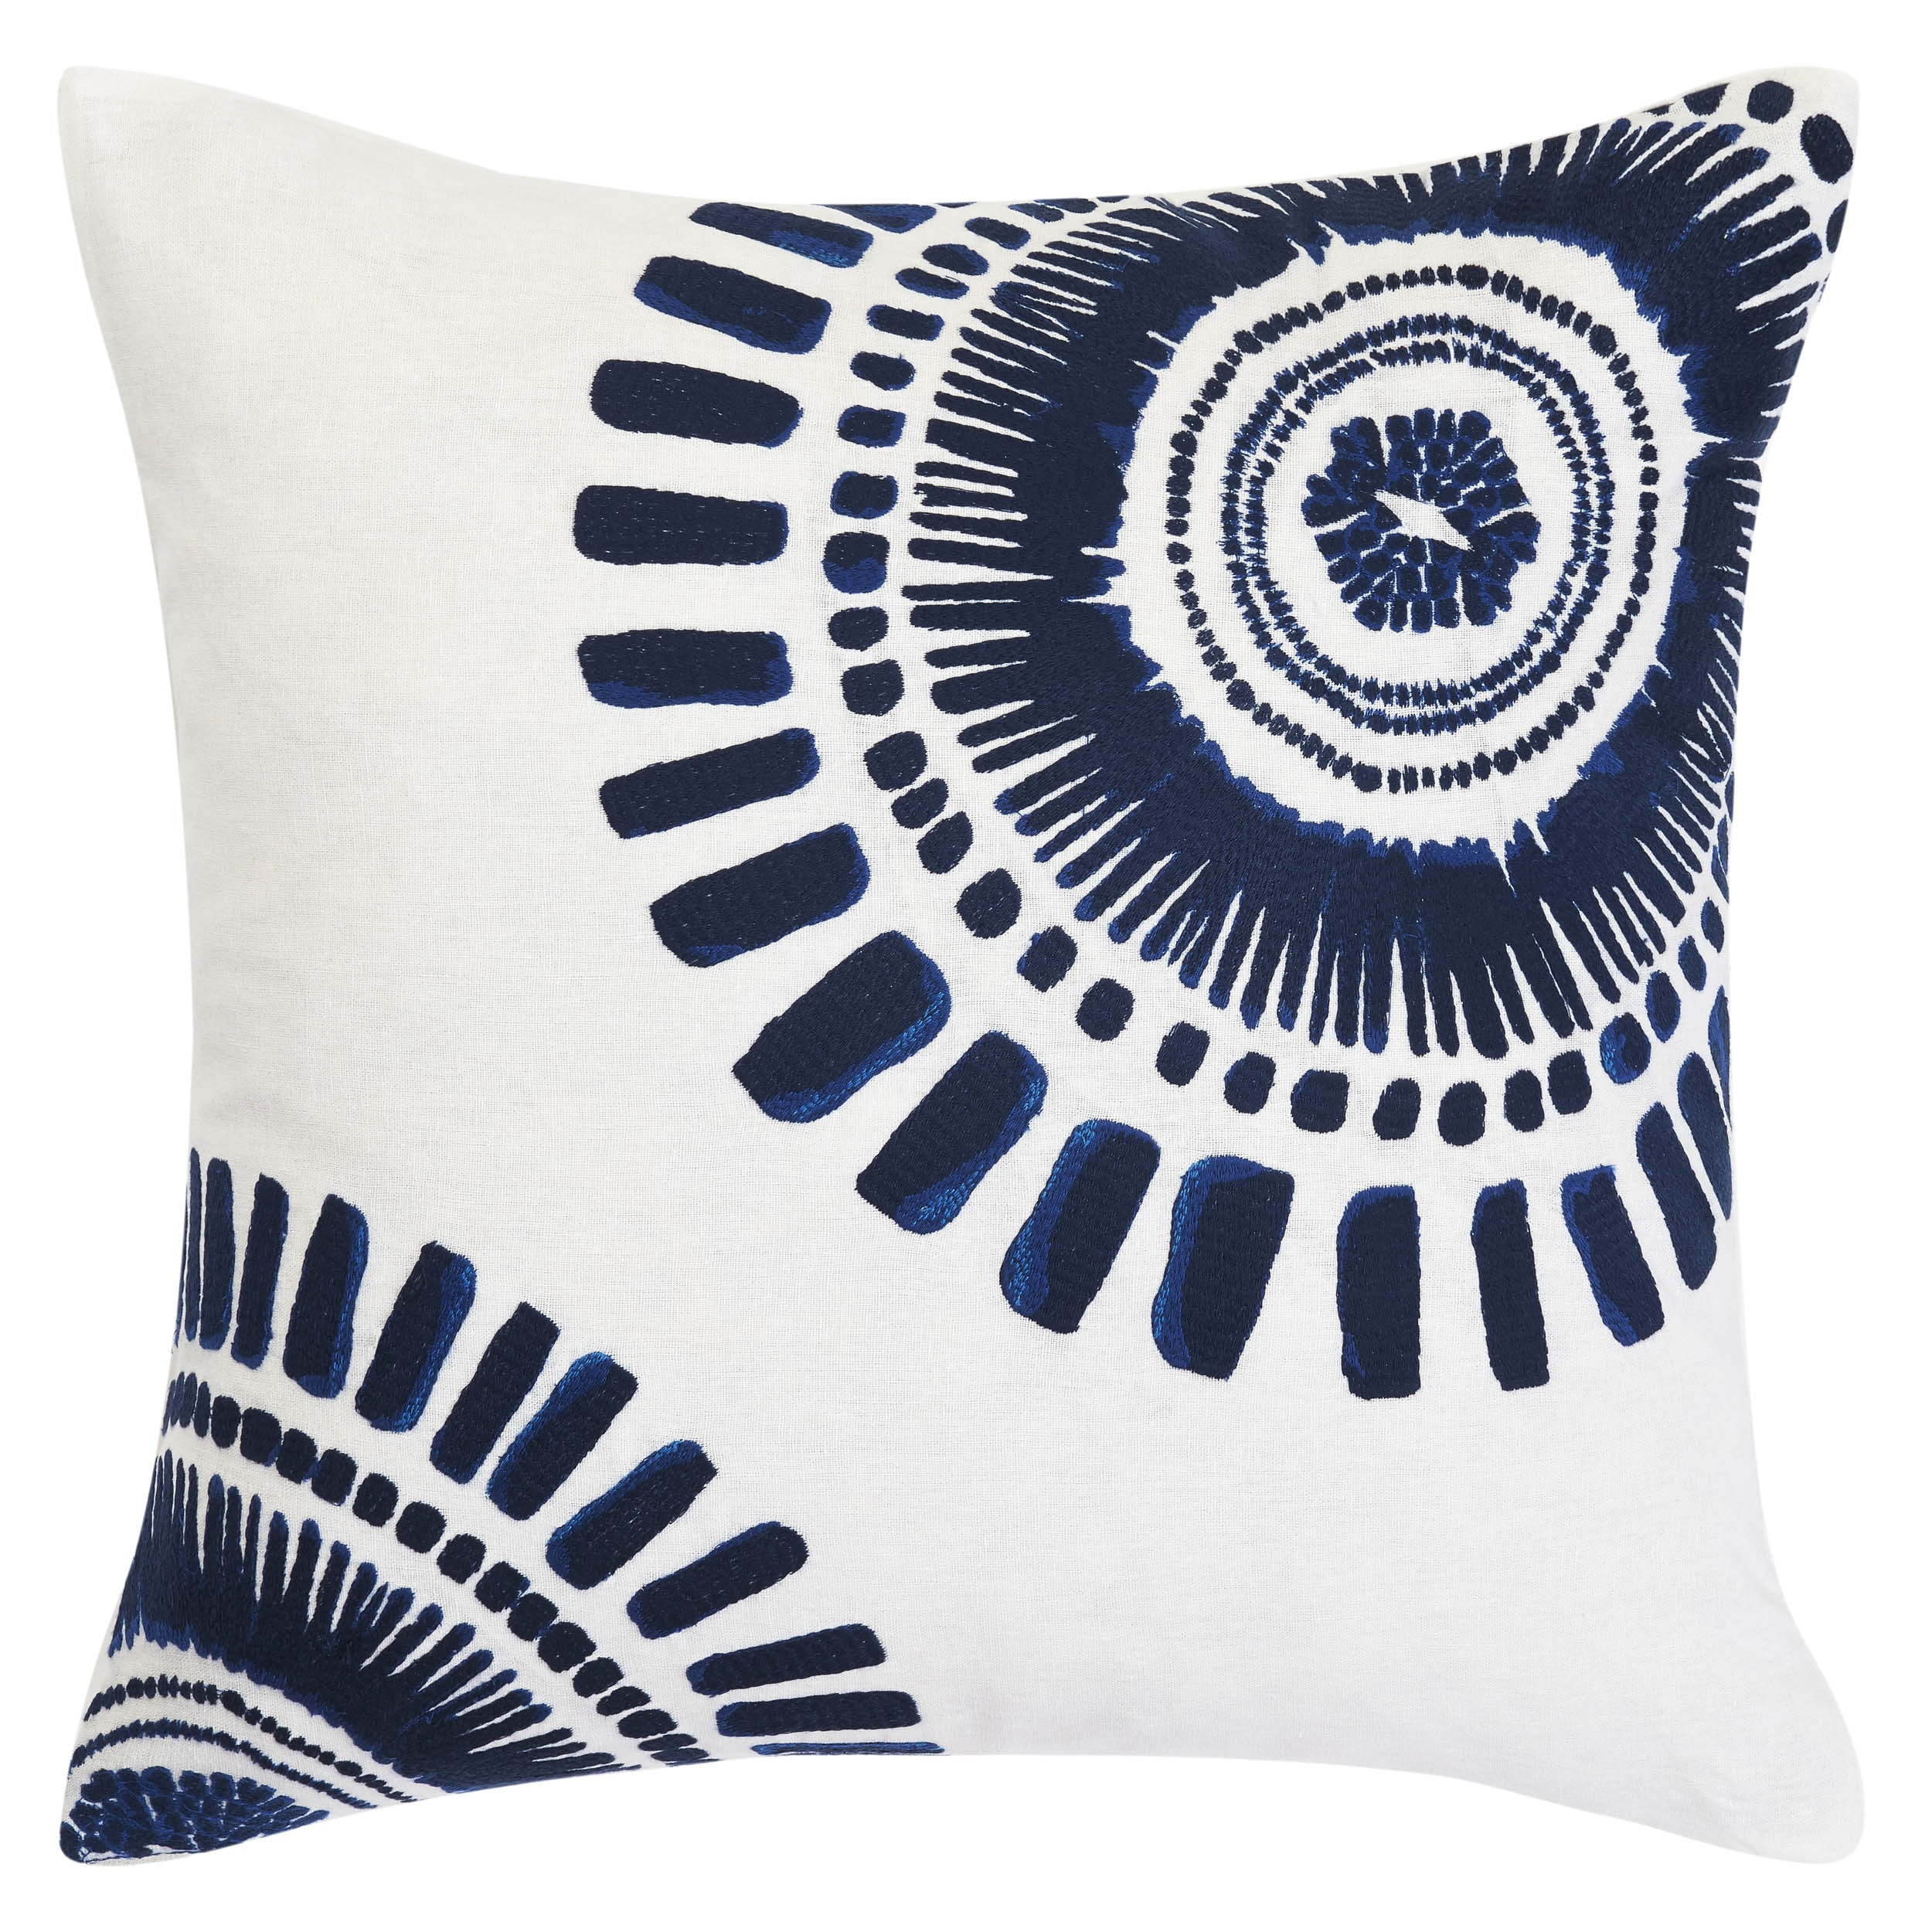 embroidered jolla la trina turk pillows pin pillow